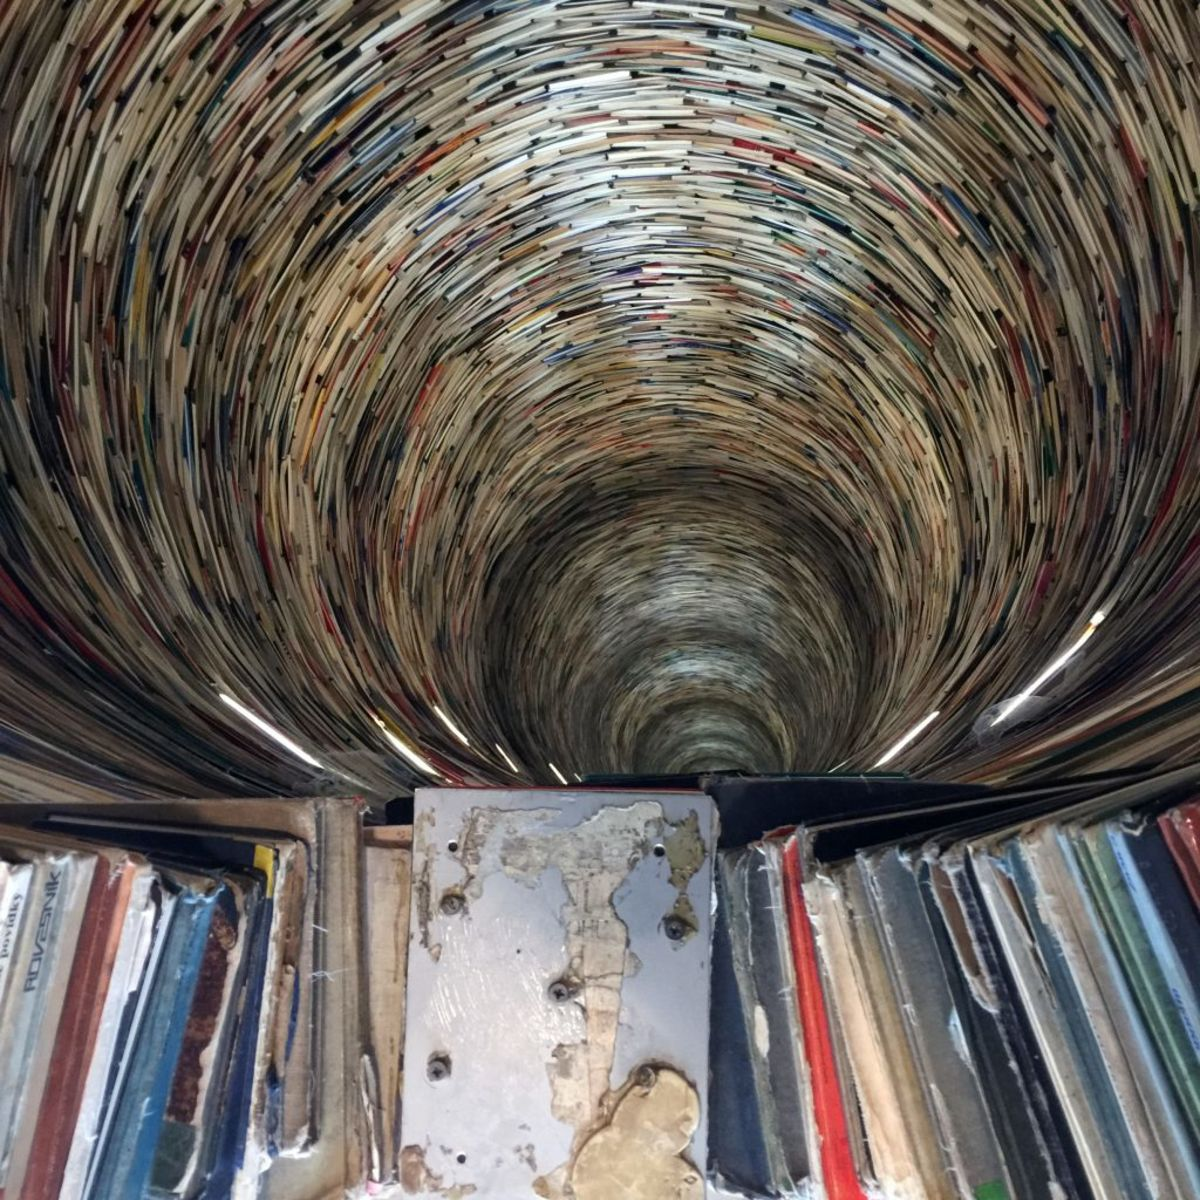 inside a colorful tower made of books